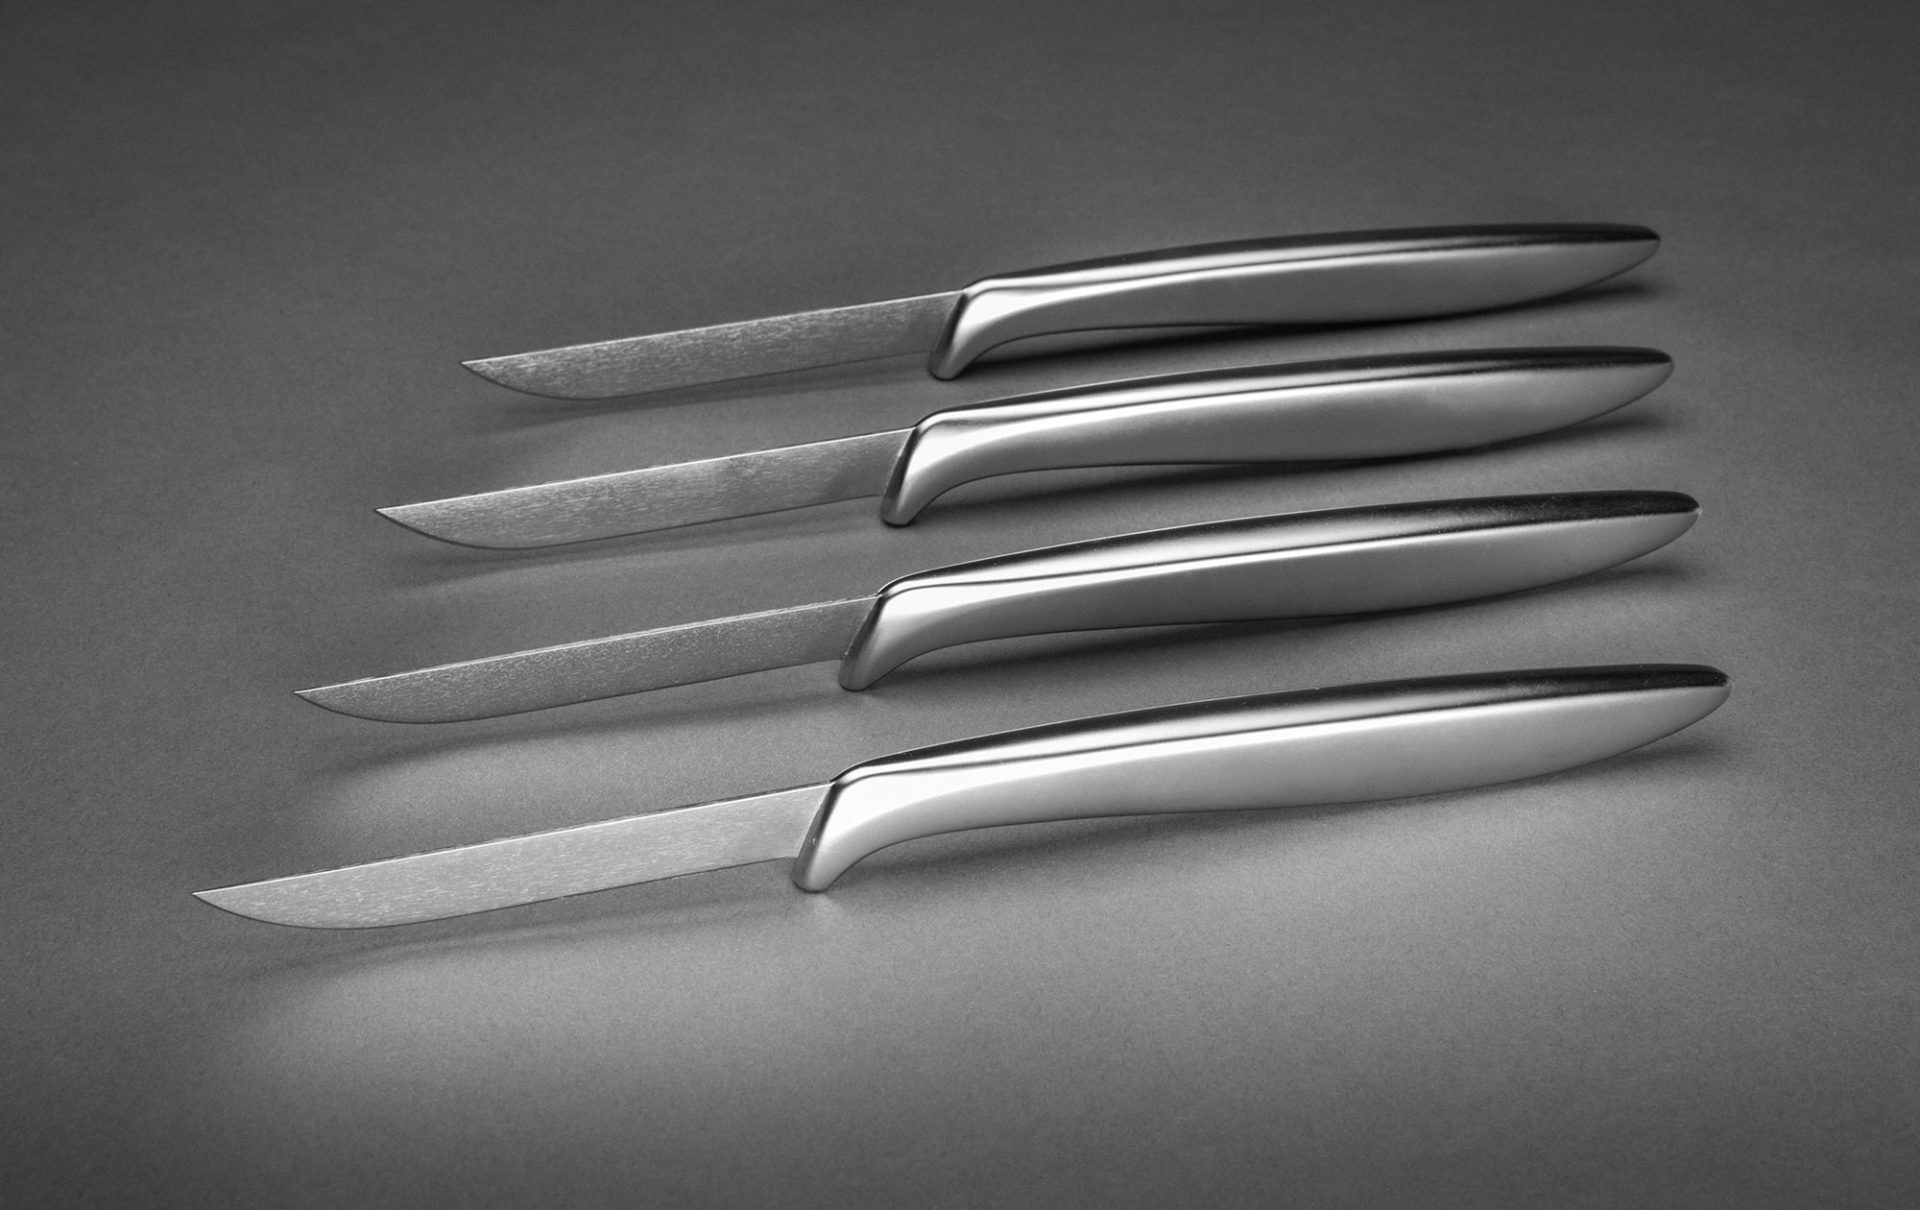 Set of four identical knives with sleek brushed-metal handles and slender steel blades.